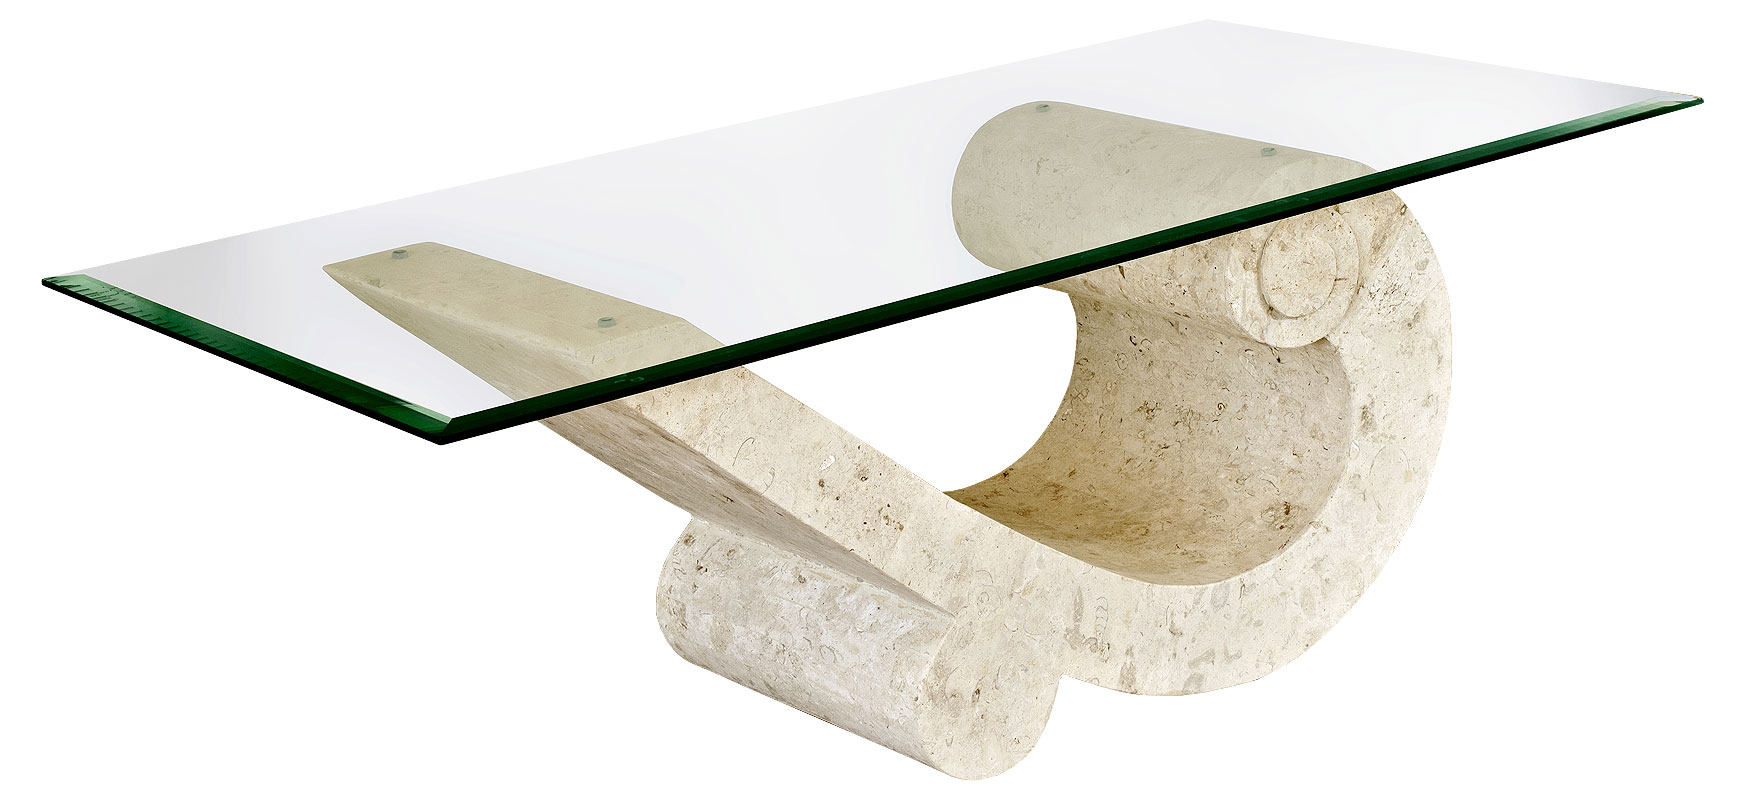 Stone And Glass Coffee Tables Modern Minimalist Console Tables All Narcissist Industrial Style Rustic Wood Furniture (View 7 of 10)